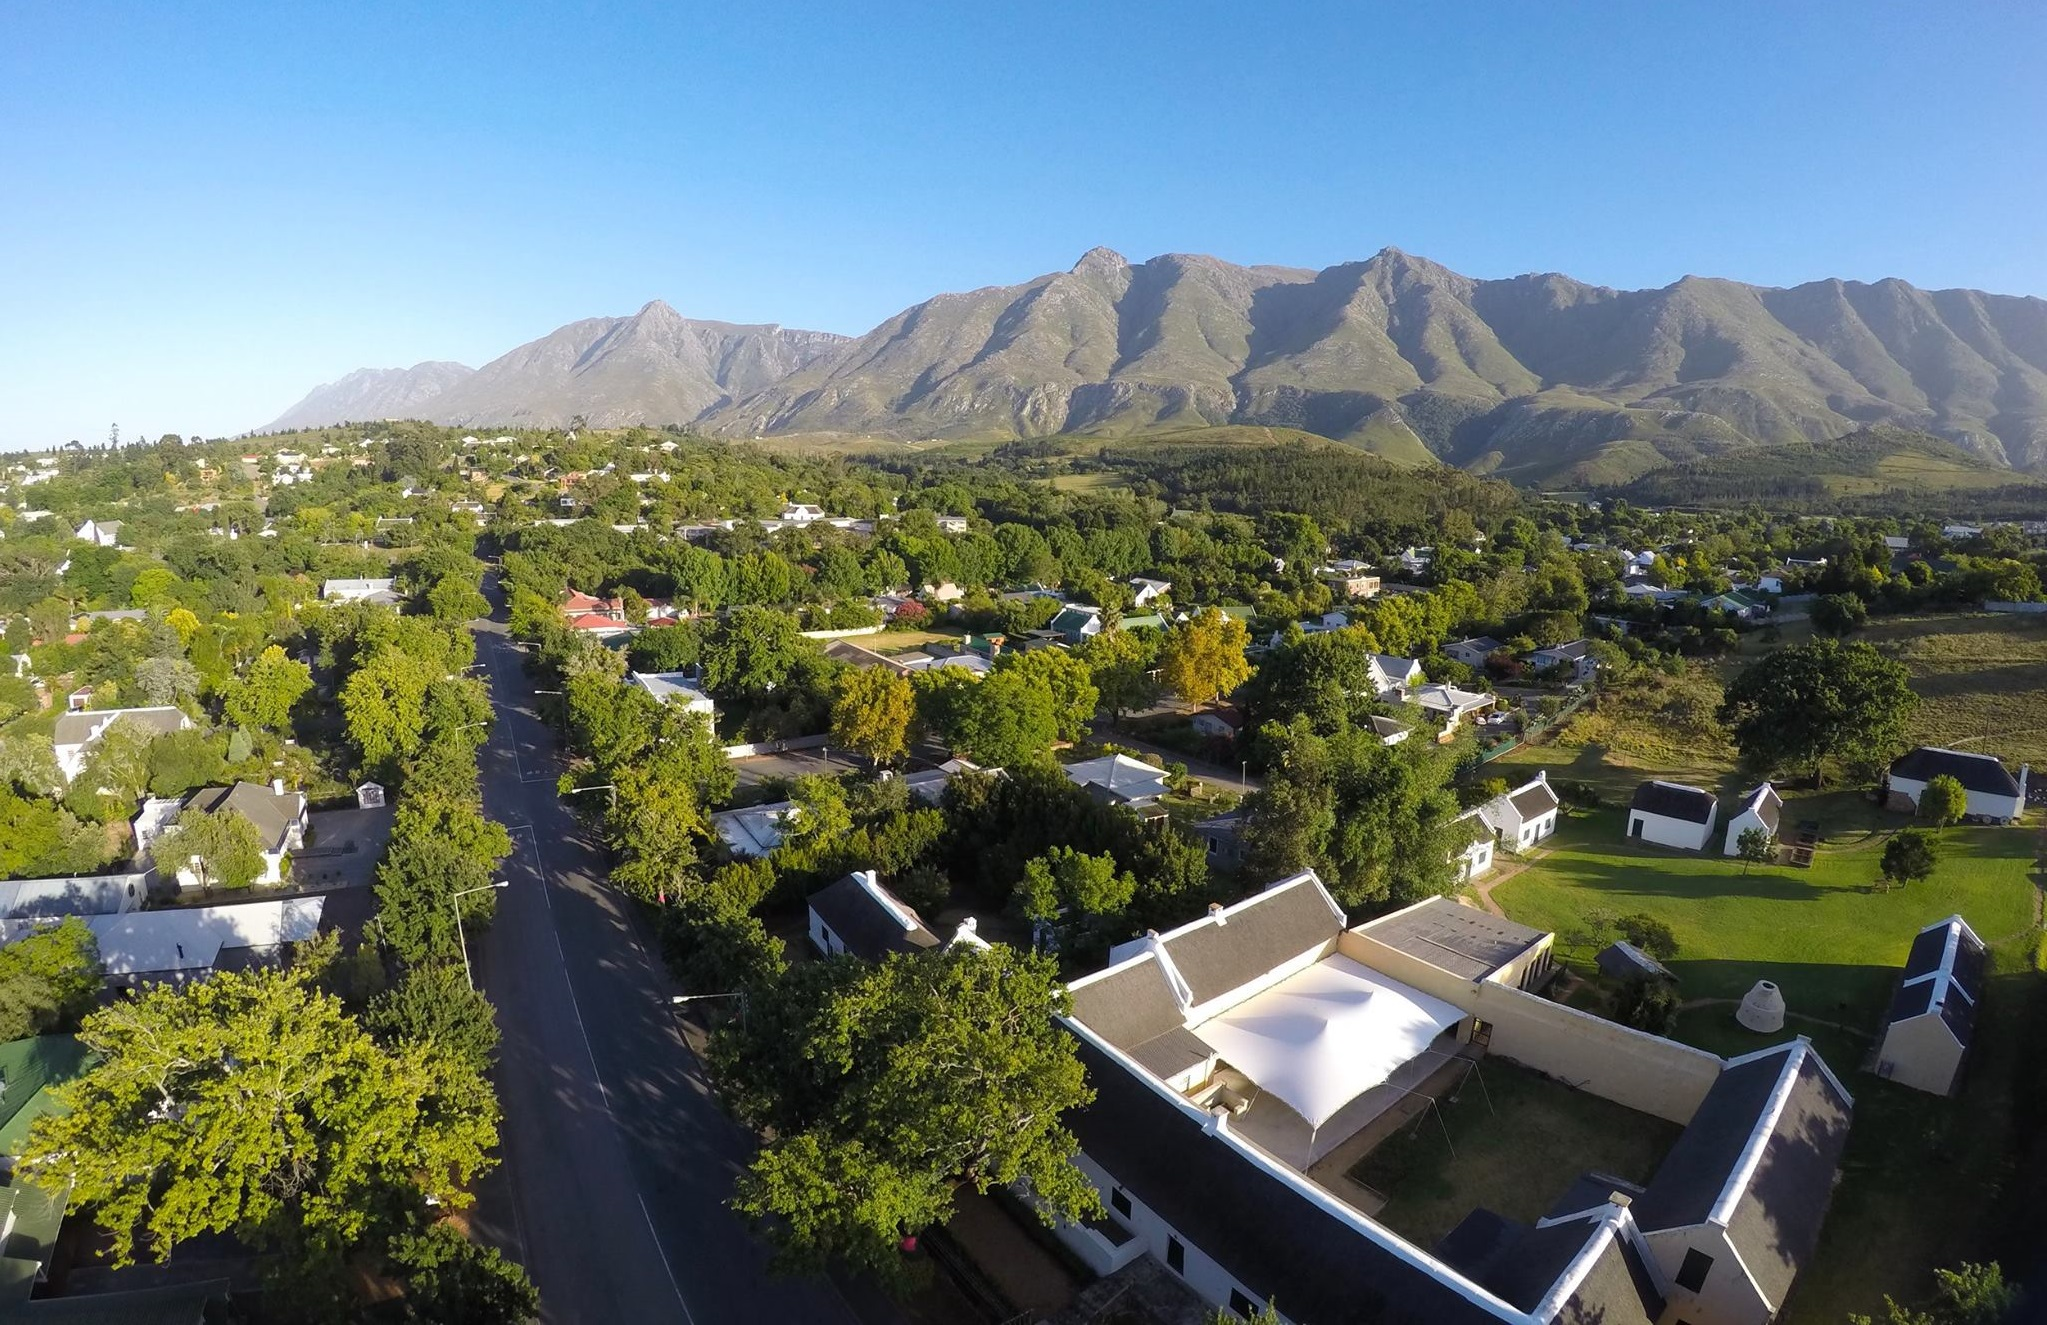 Top things to do in Swellendam